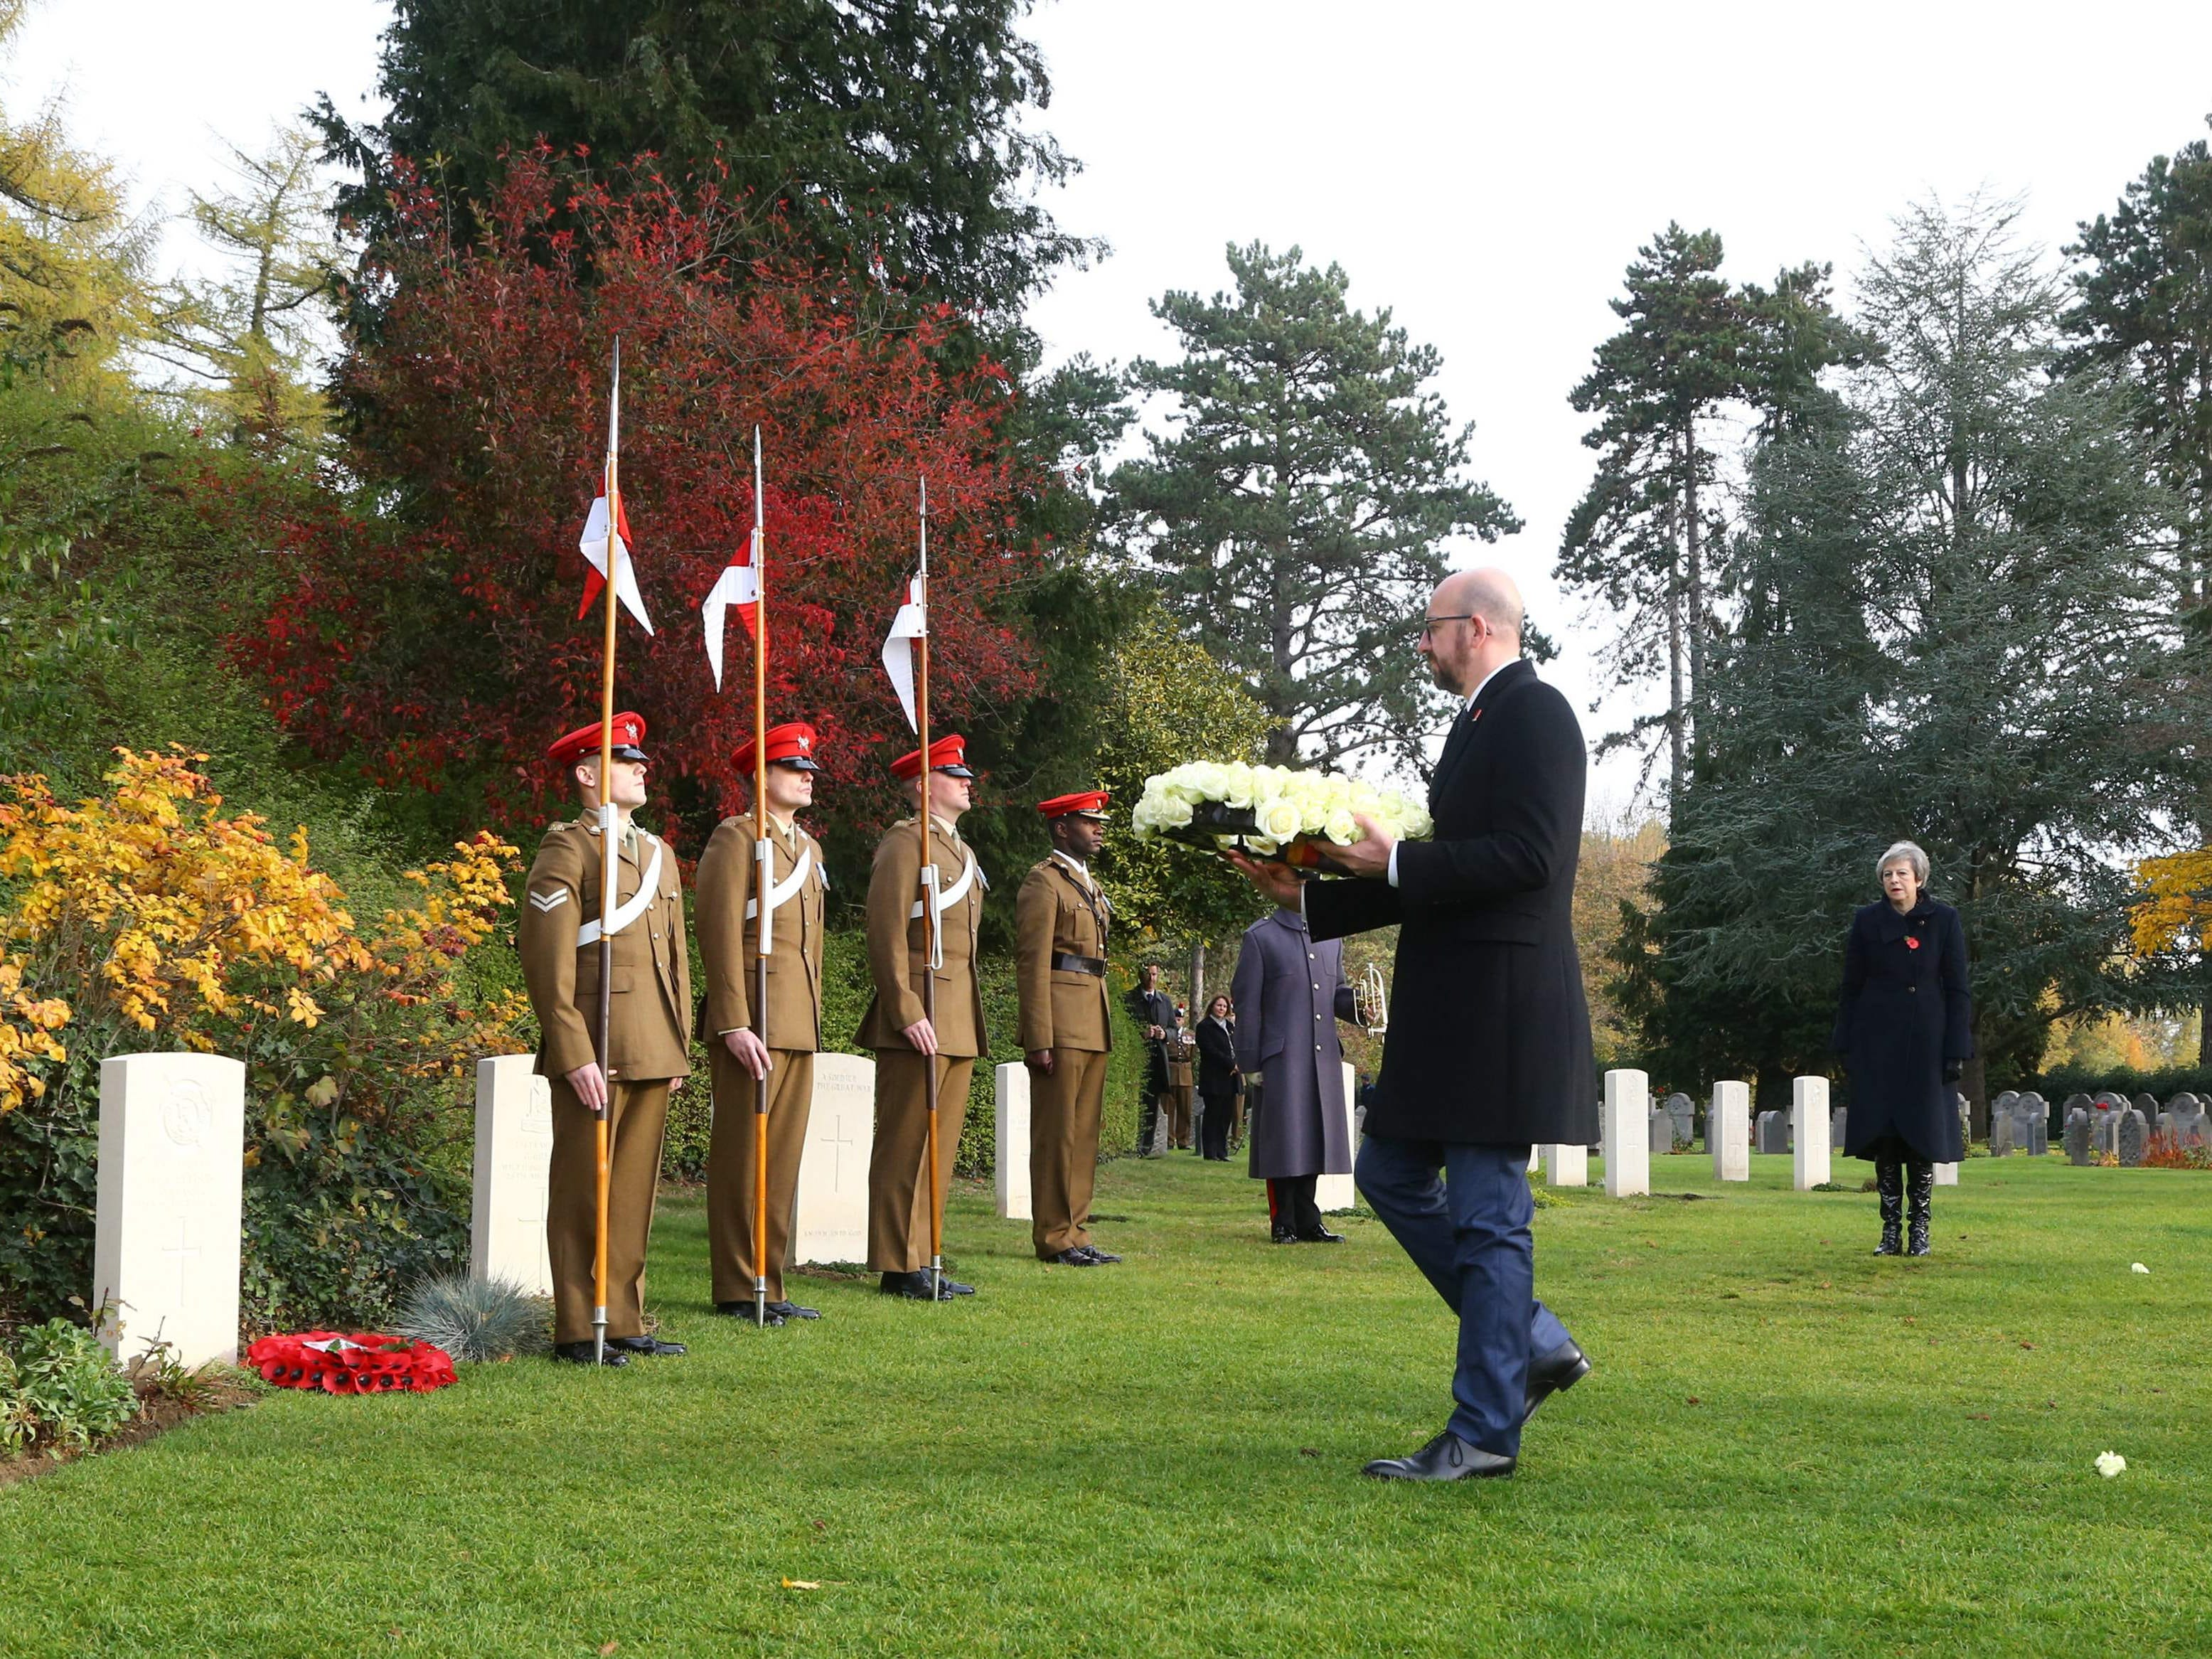 Britain's Prime Minister Theresa May (R) watches as Belgium's Prime Minister Charles Michel prepares to lay a wreath at the grave of George Ellison, the last British soldier to be killed before Armistice in 1918, at the St Symphorien Military Cemetery in Mons, Belgium, on November 9, 2018. - British Prime Minister Theresa May and French President Emmanuel Macron are set to commemorate their countries' shared sacrifice in the First World War on Friday and discuss the future of their post-Brexit relationship. The commemoration, just ahead of the 100th anniversary of the end of WWI, will be held at the Thiepval Memorial to the Missing of the Somme, in northern France, near the Belgian border. (Photo by Gareth Fuller / POOL / AFP)GARETH FULLER/AFP/Getty Images ORIG FILE ID: AFP_1AP3KM